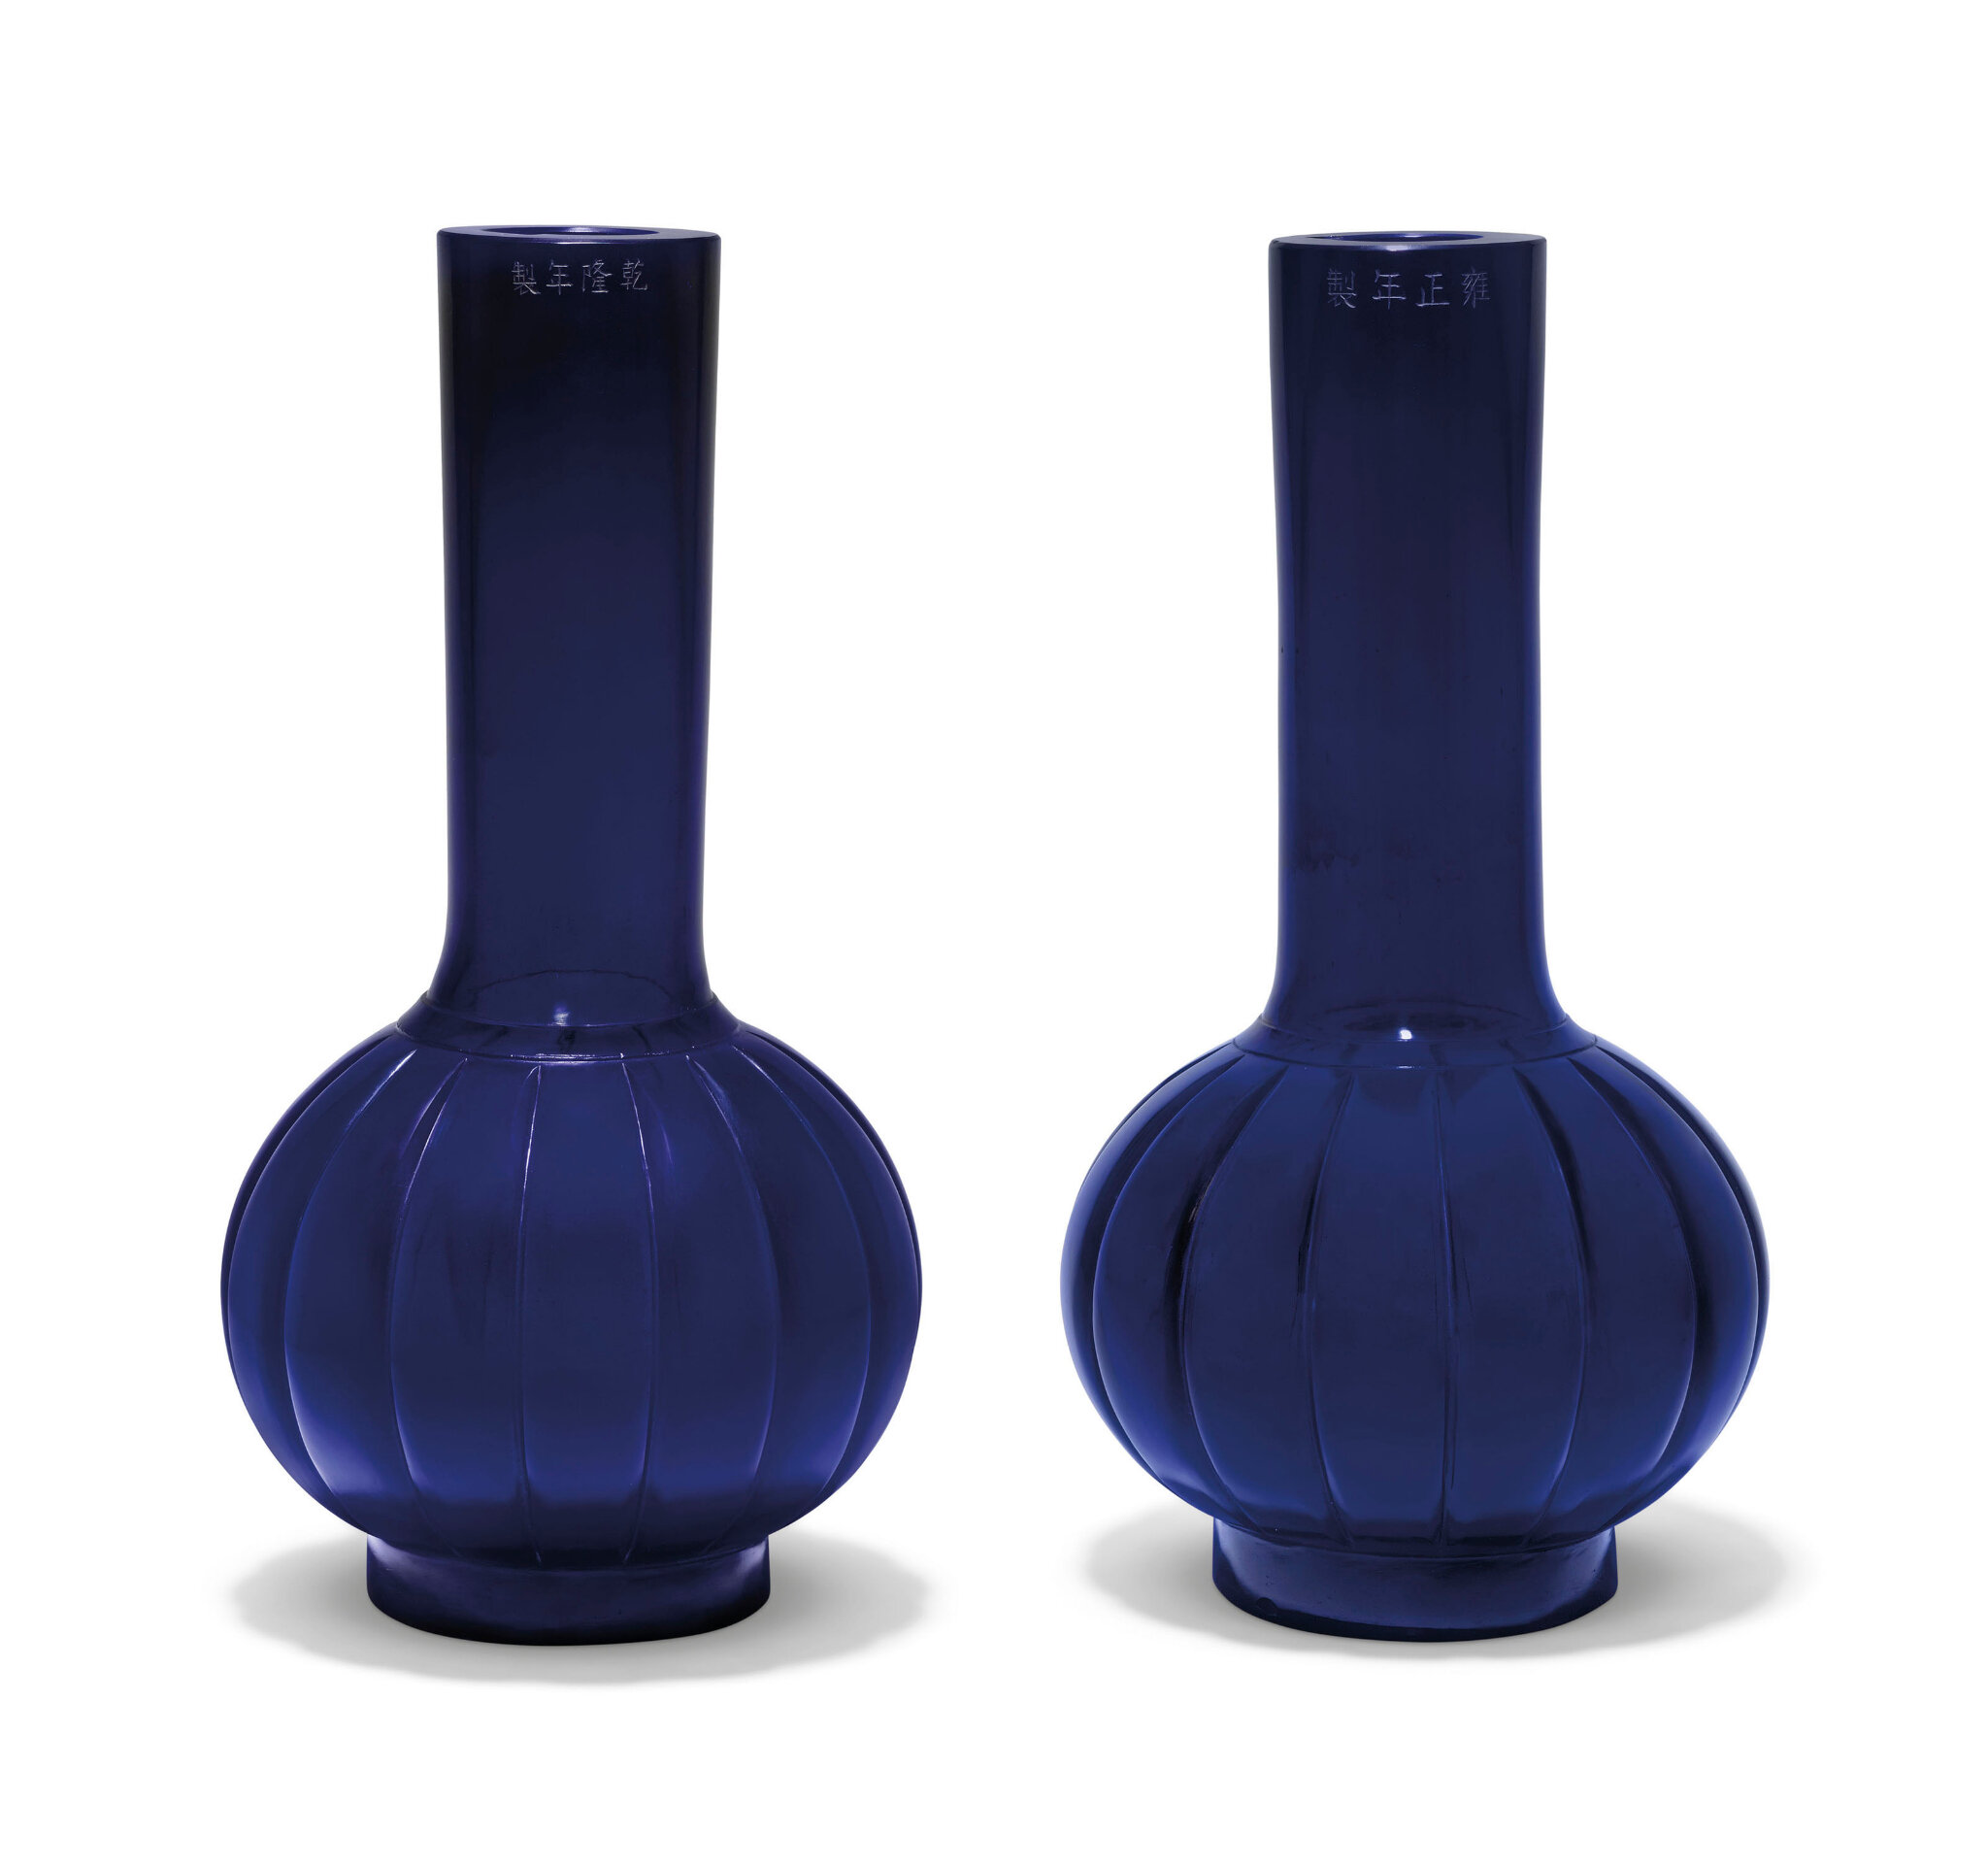 Two similar translucent blue glass lobed bottle vases, 19th century